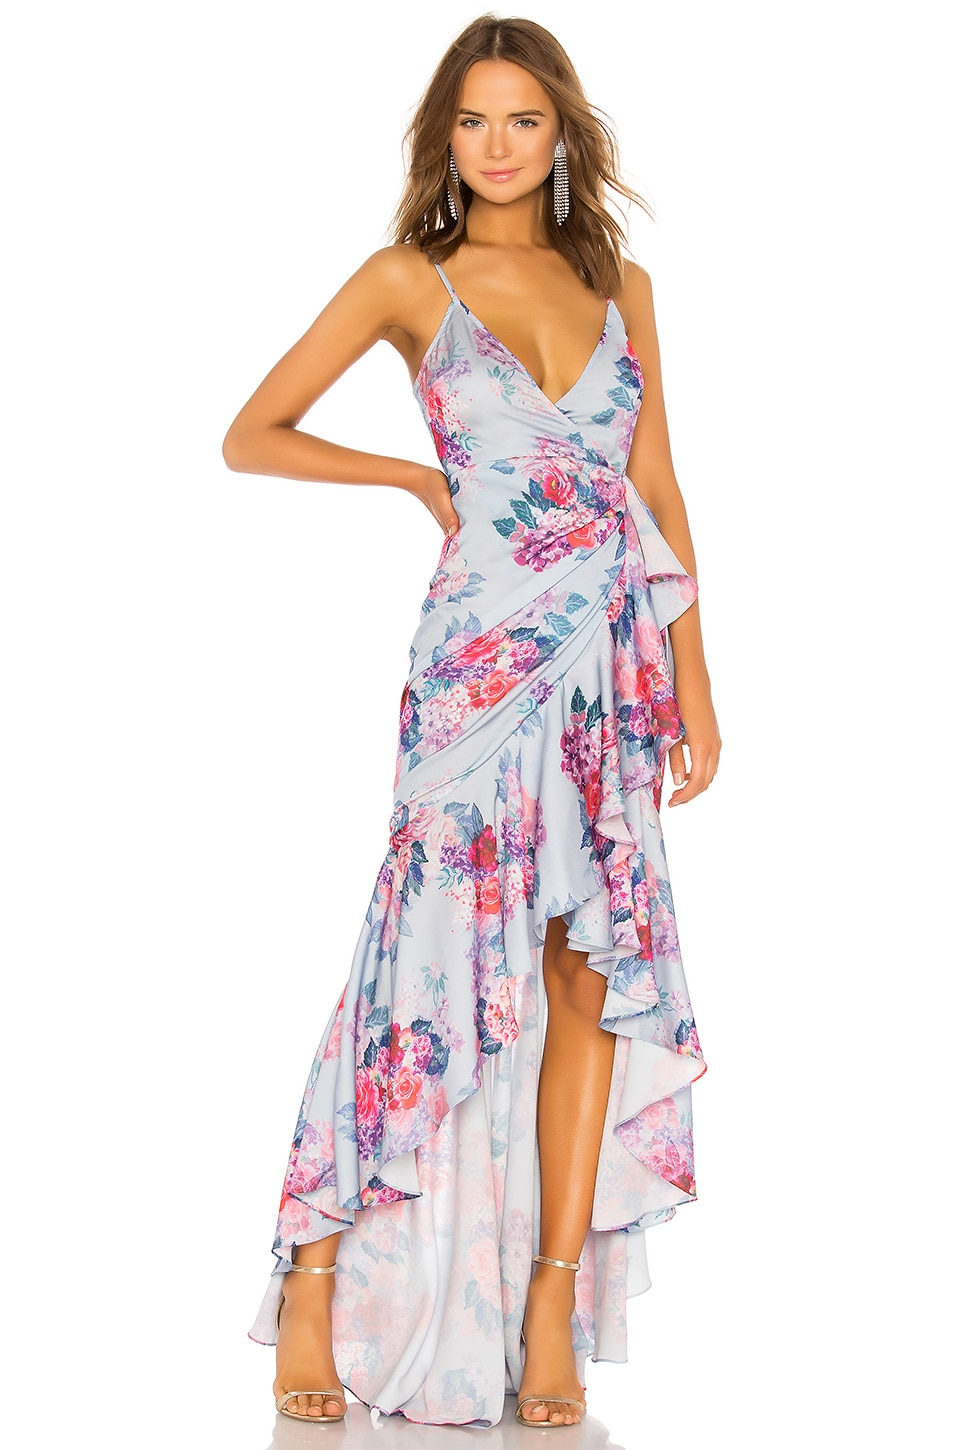 Michael Costello x REVOLVE Ateinne Dress in Pale Blue Floral